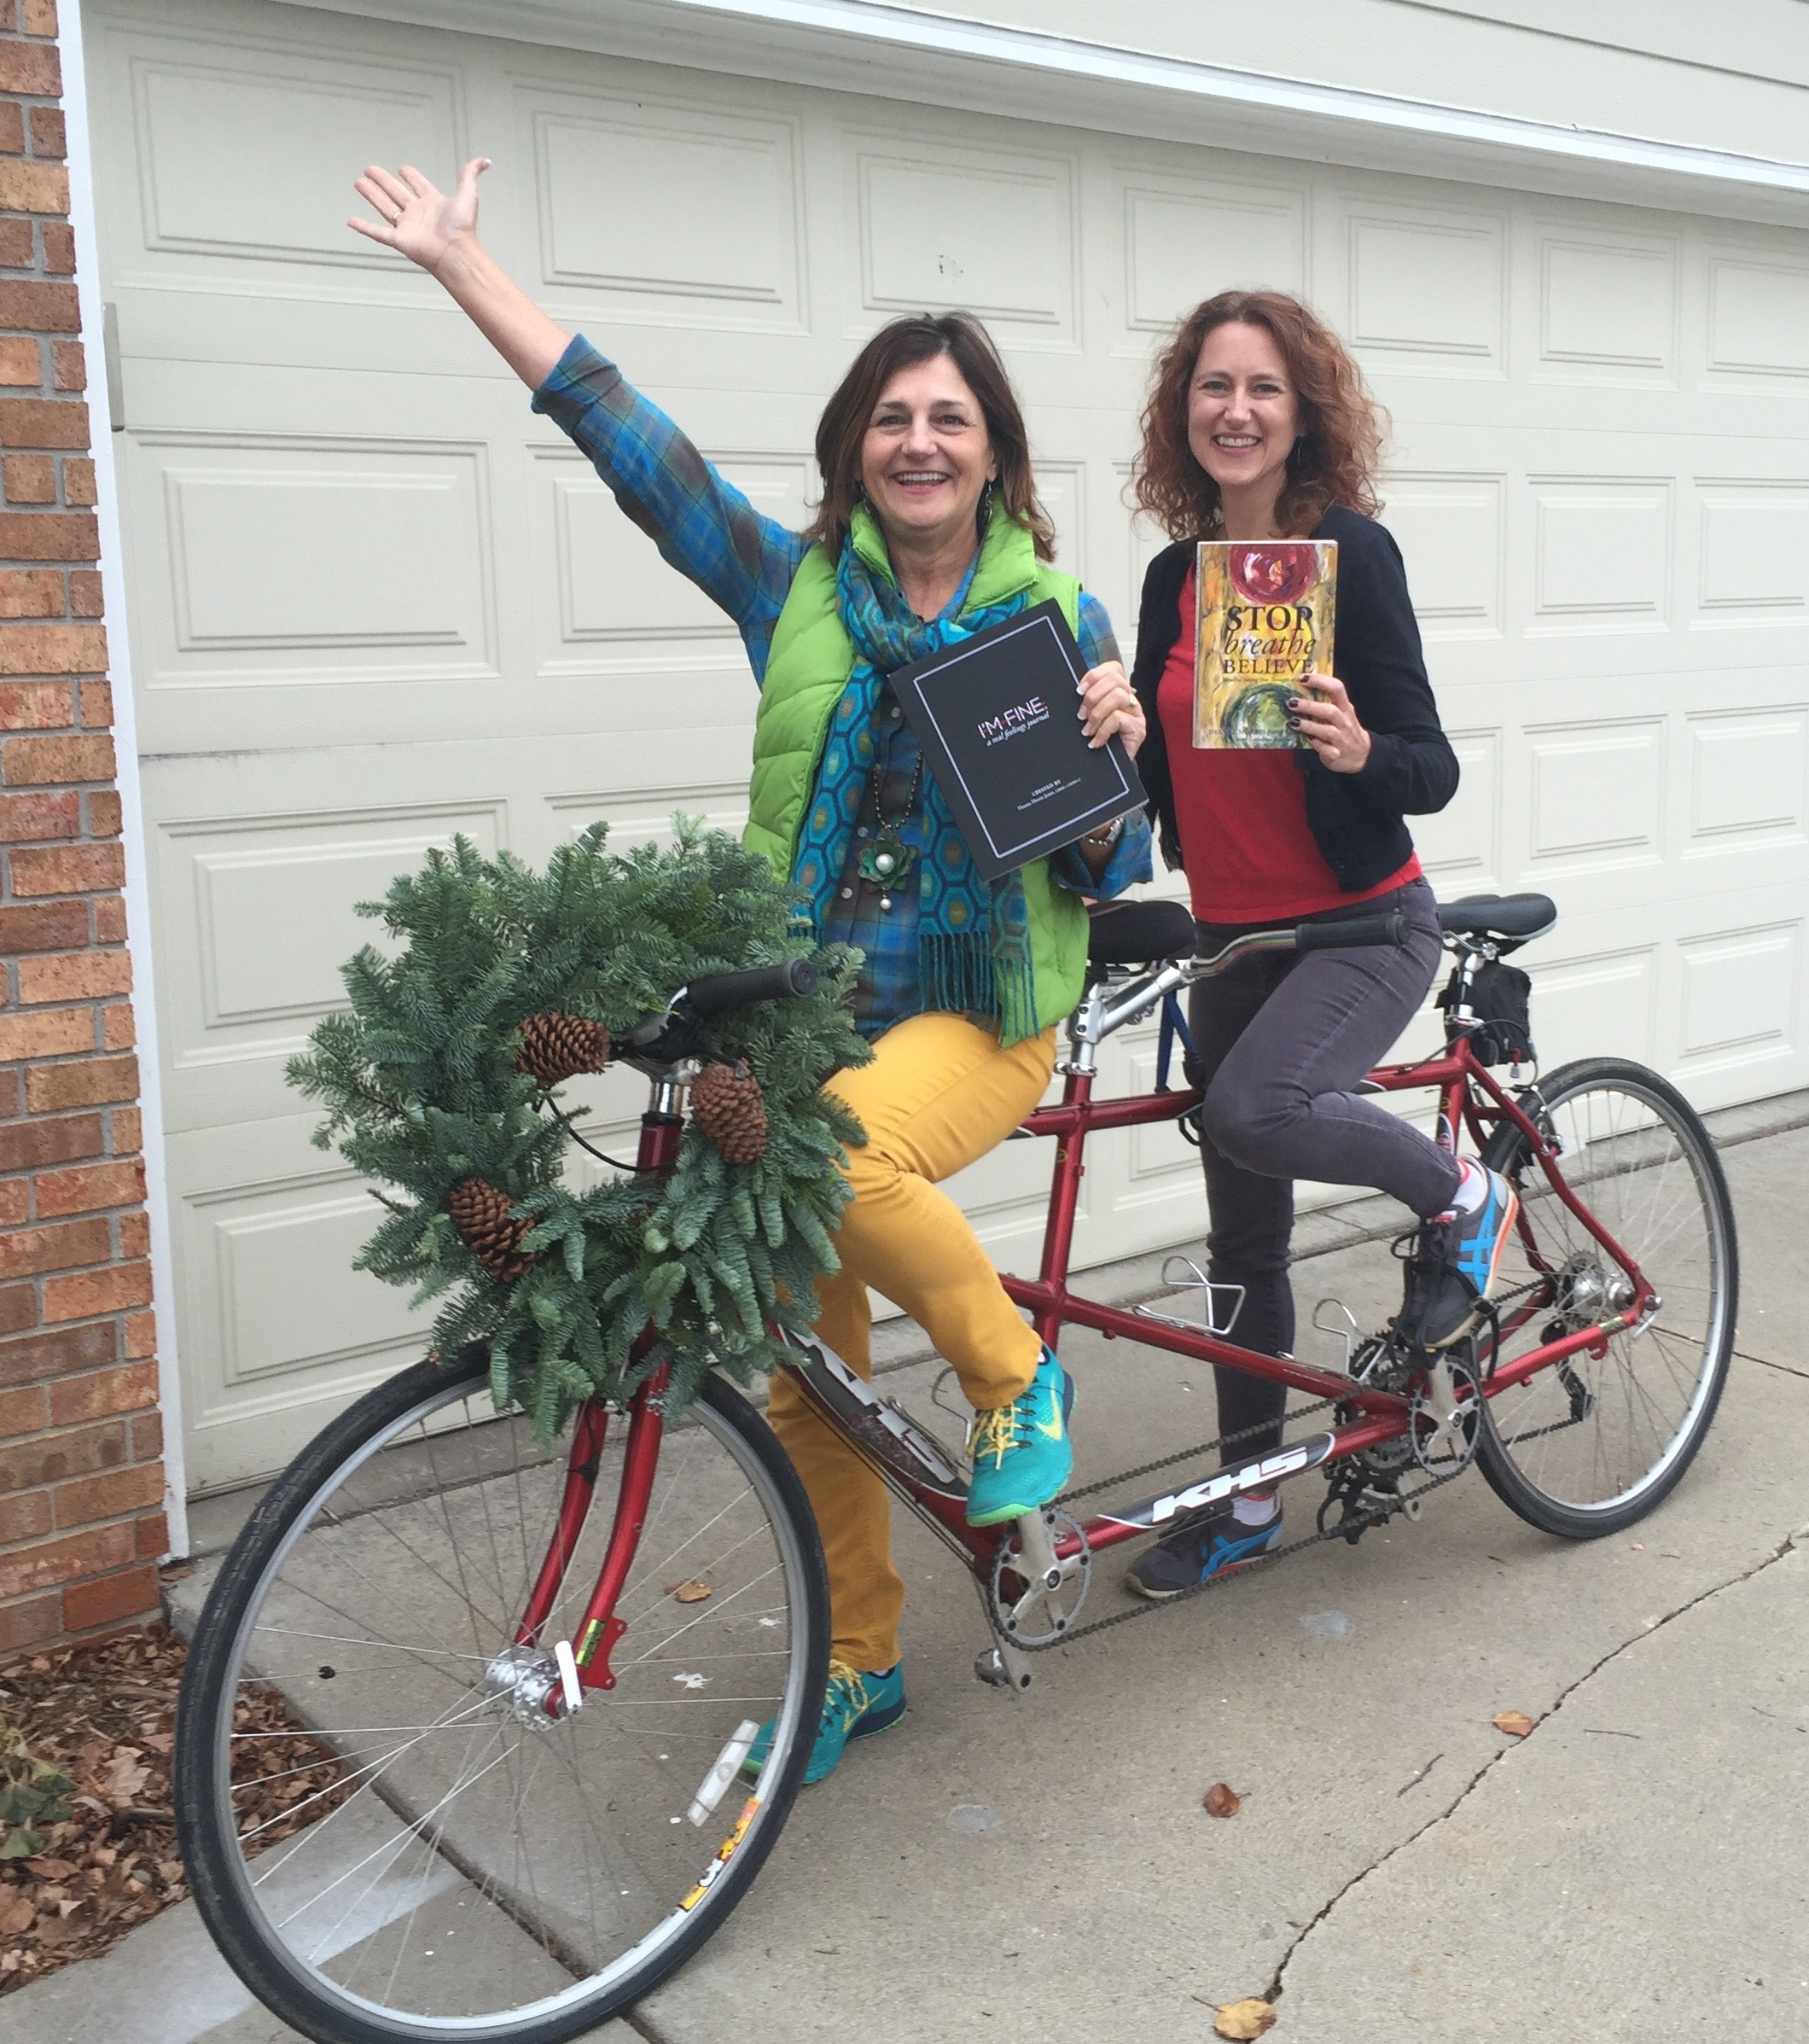 Tandem Brick Gallery  Stop Shop and Savor  event in December